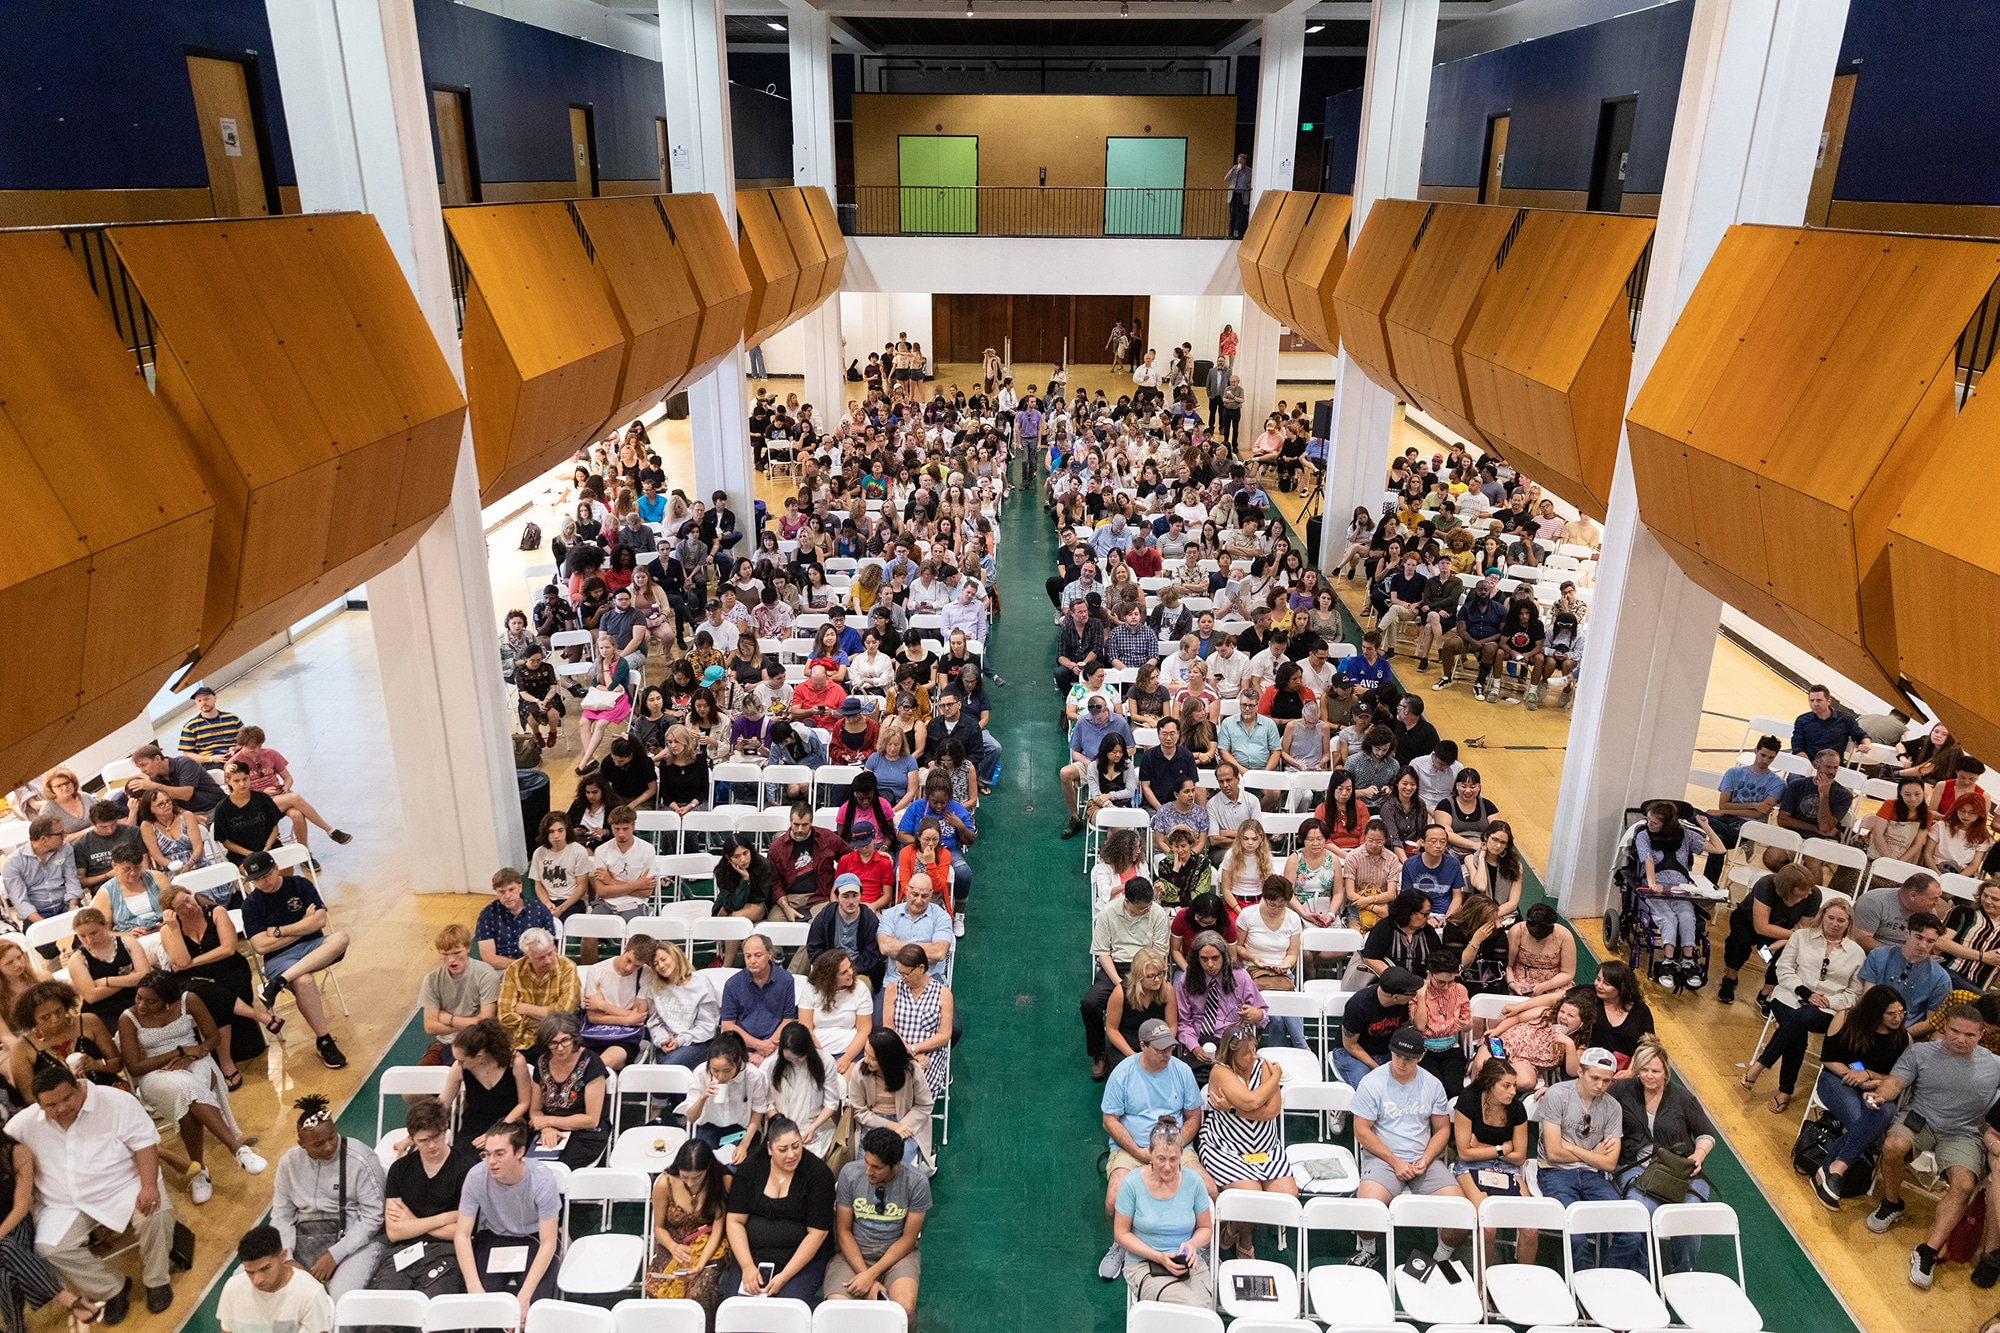 CalArts Convocation for incoming class of 2019